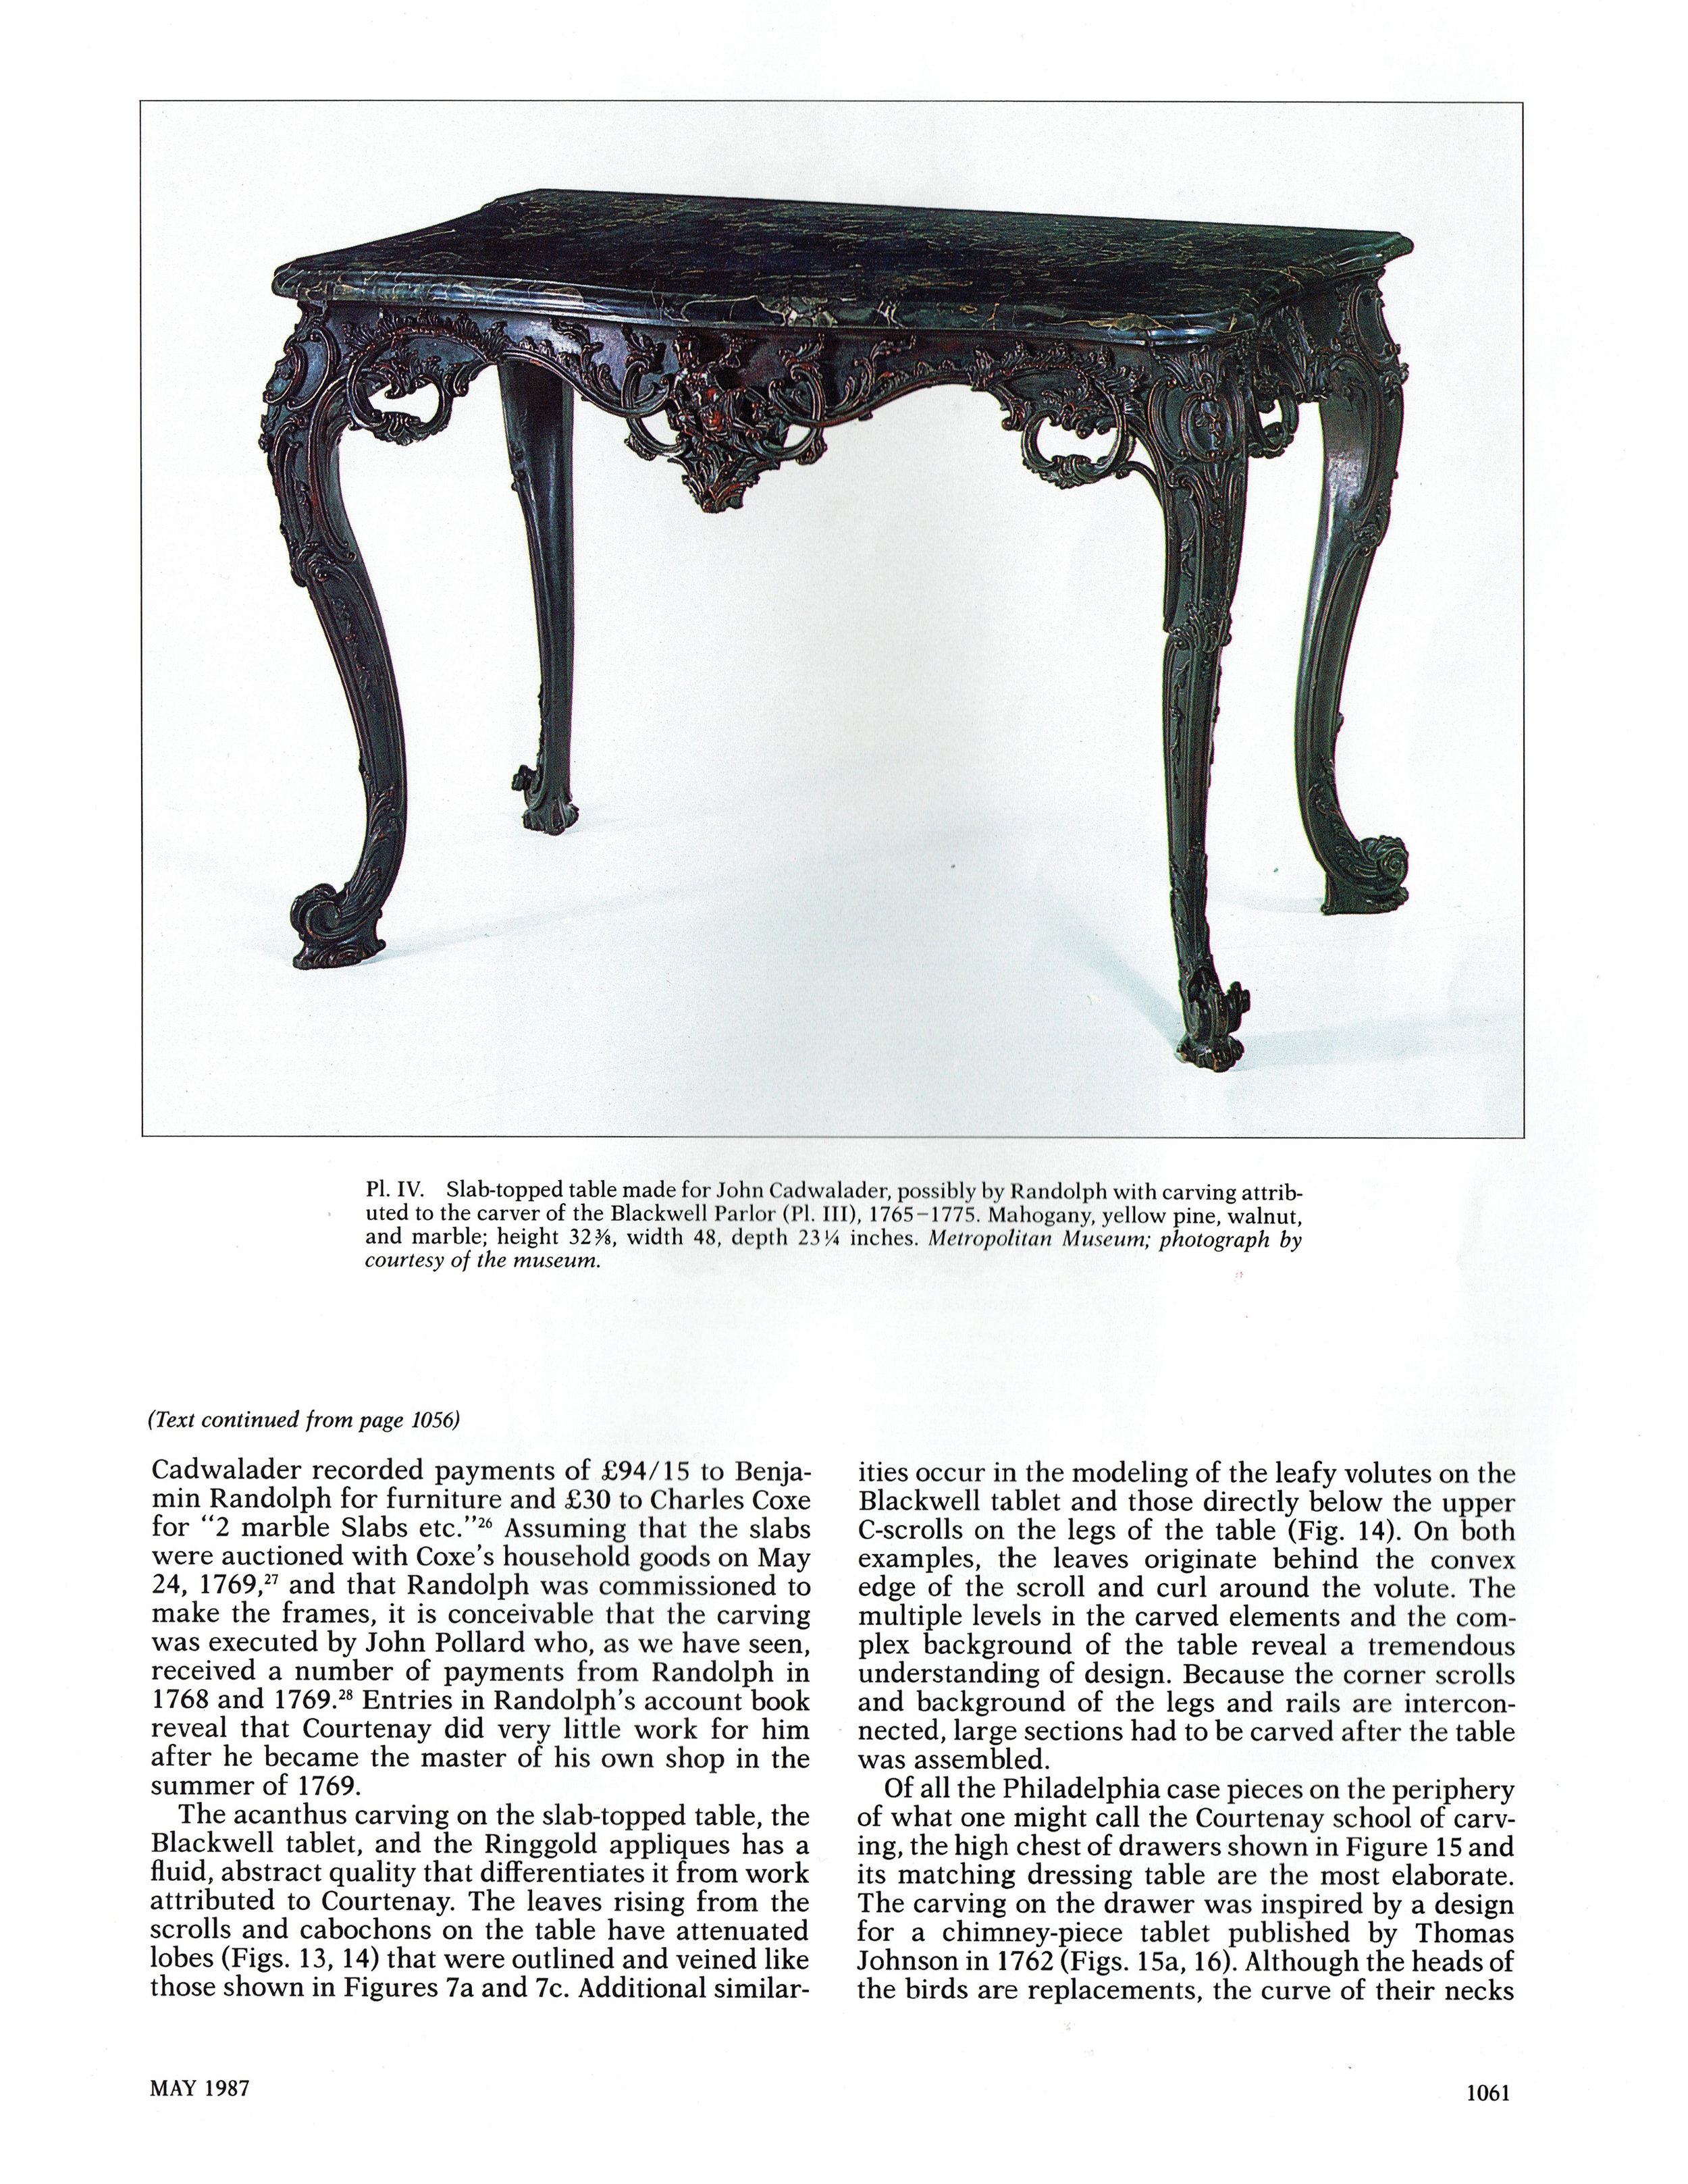 2018.01.16 CPF Antiques Article 19 - Pg1061.jpg